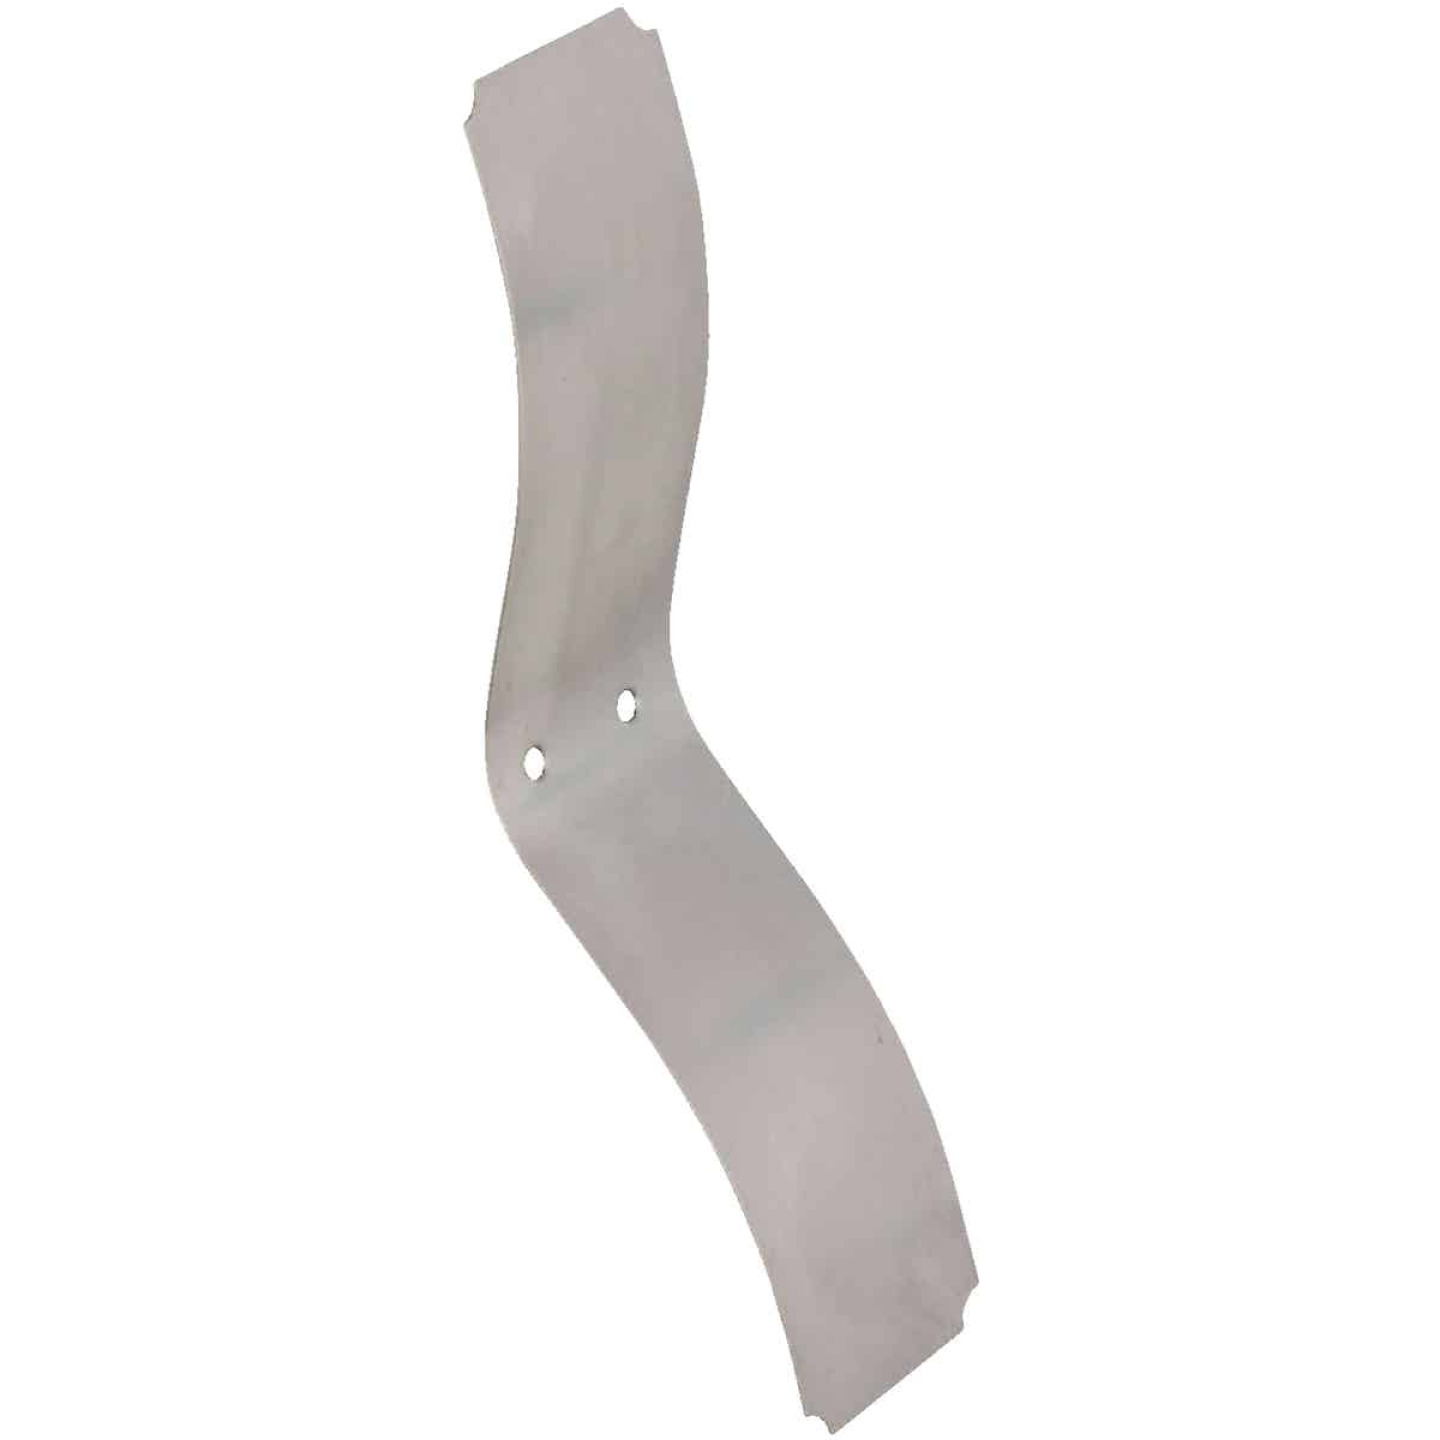 National Stainless Steel Window Sash Spring Control (2-Pack) Image 1